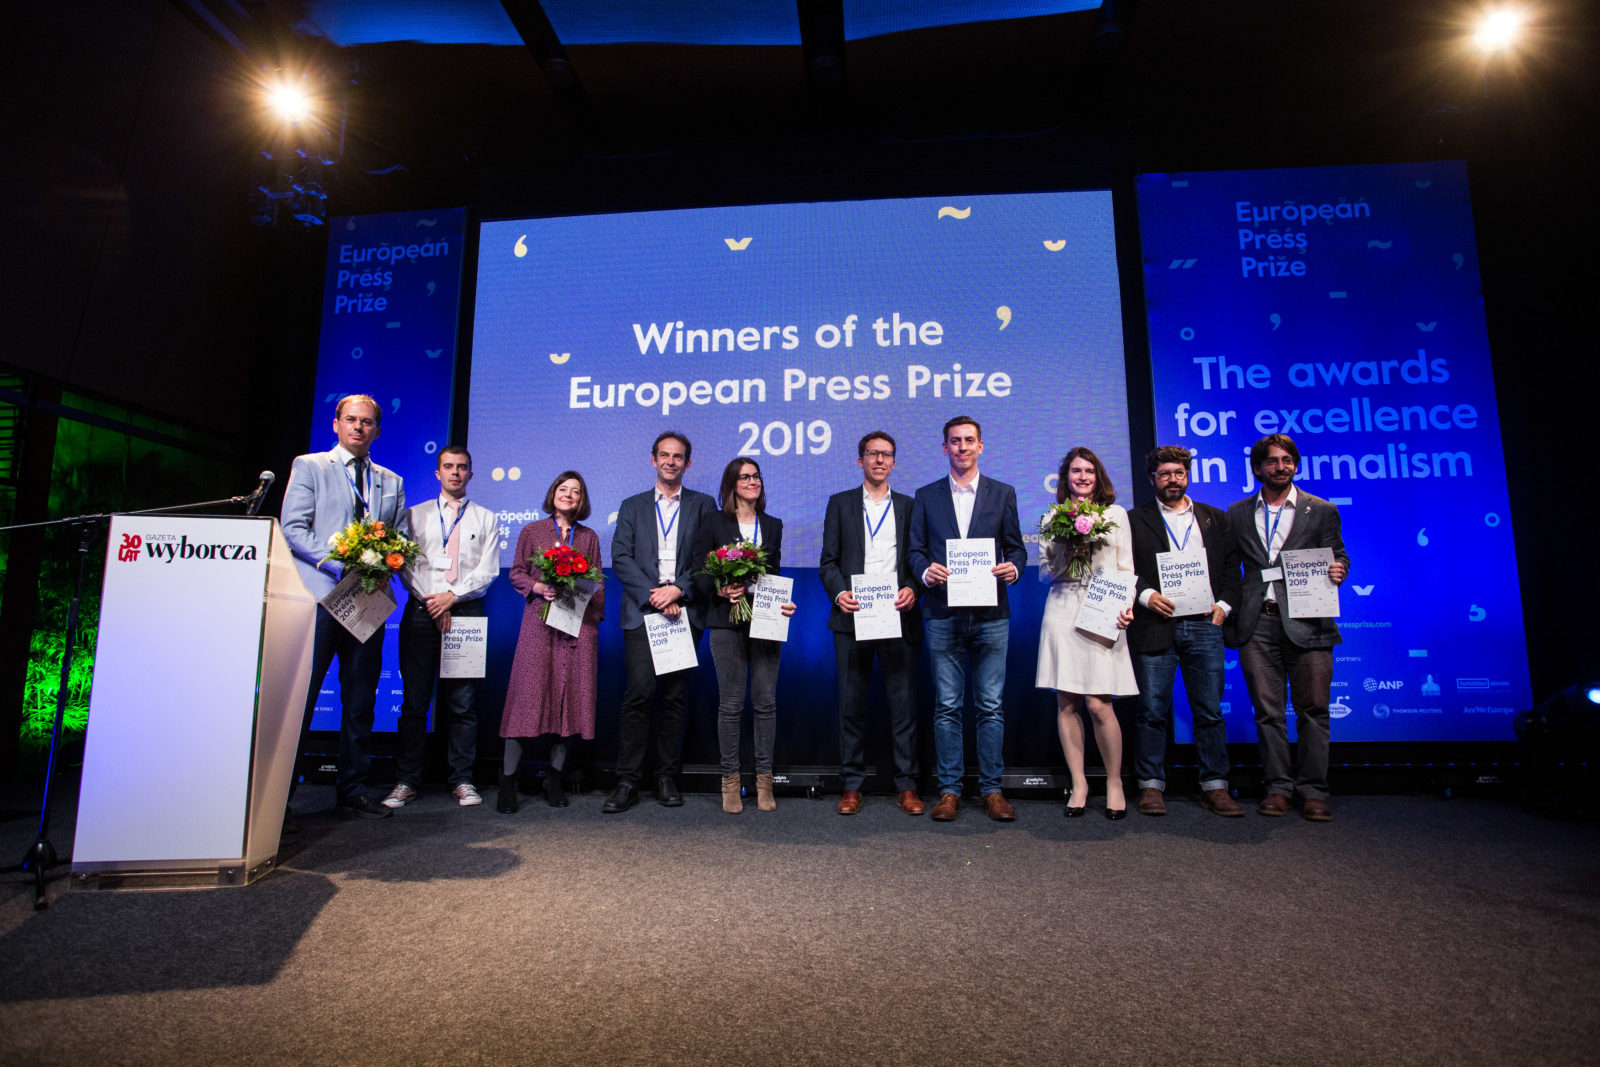 These are the winners of the European Press Prize 2019 - European